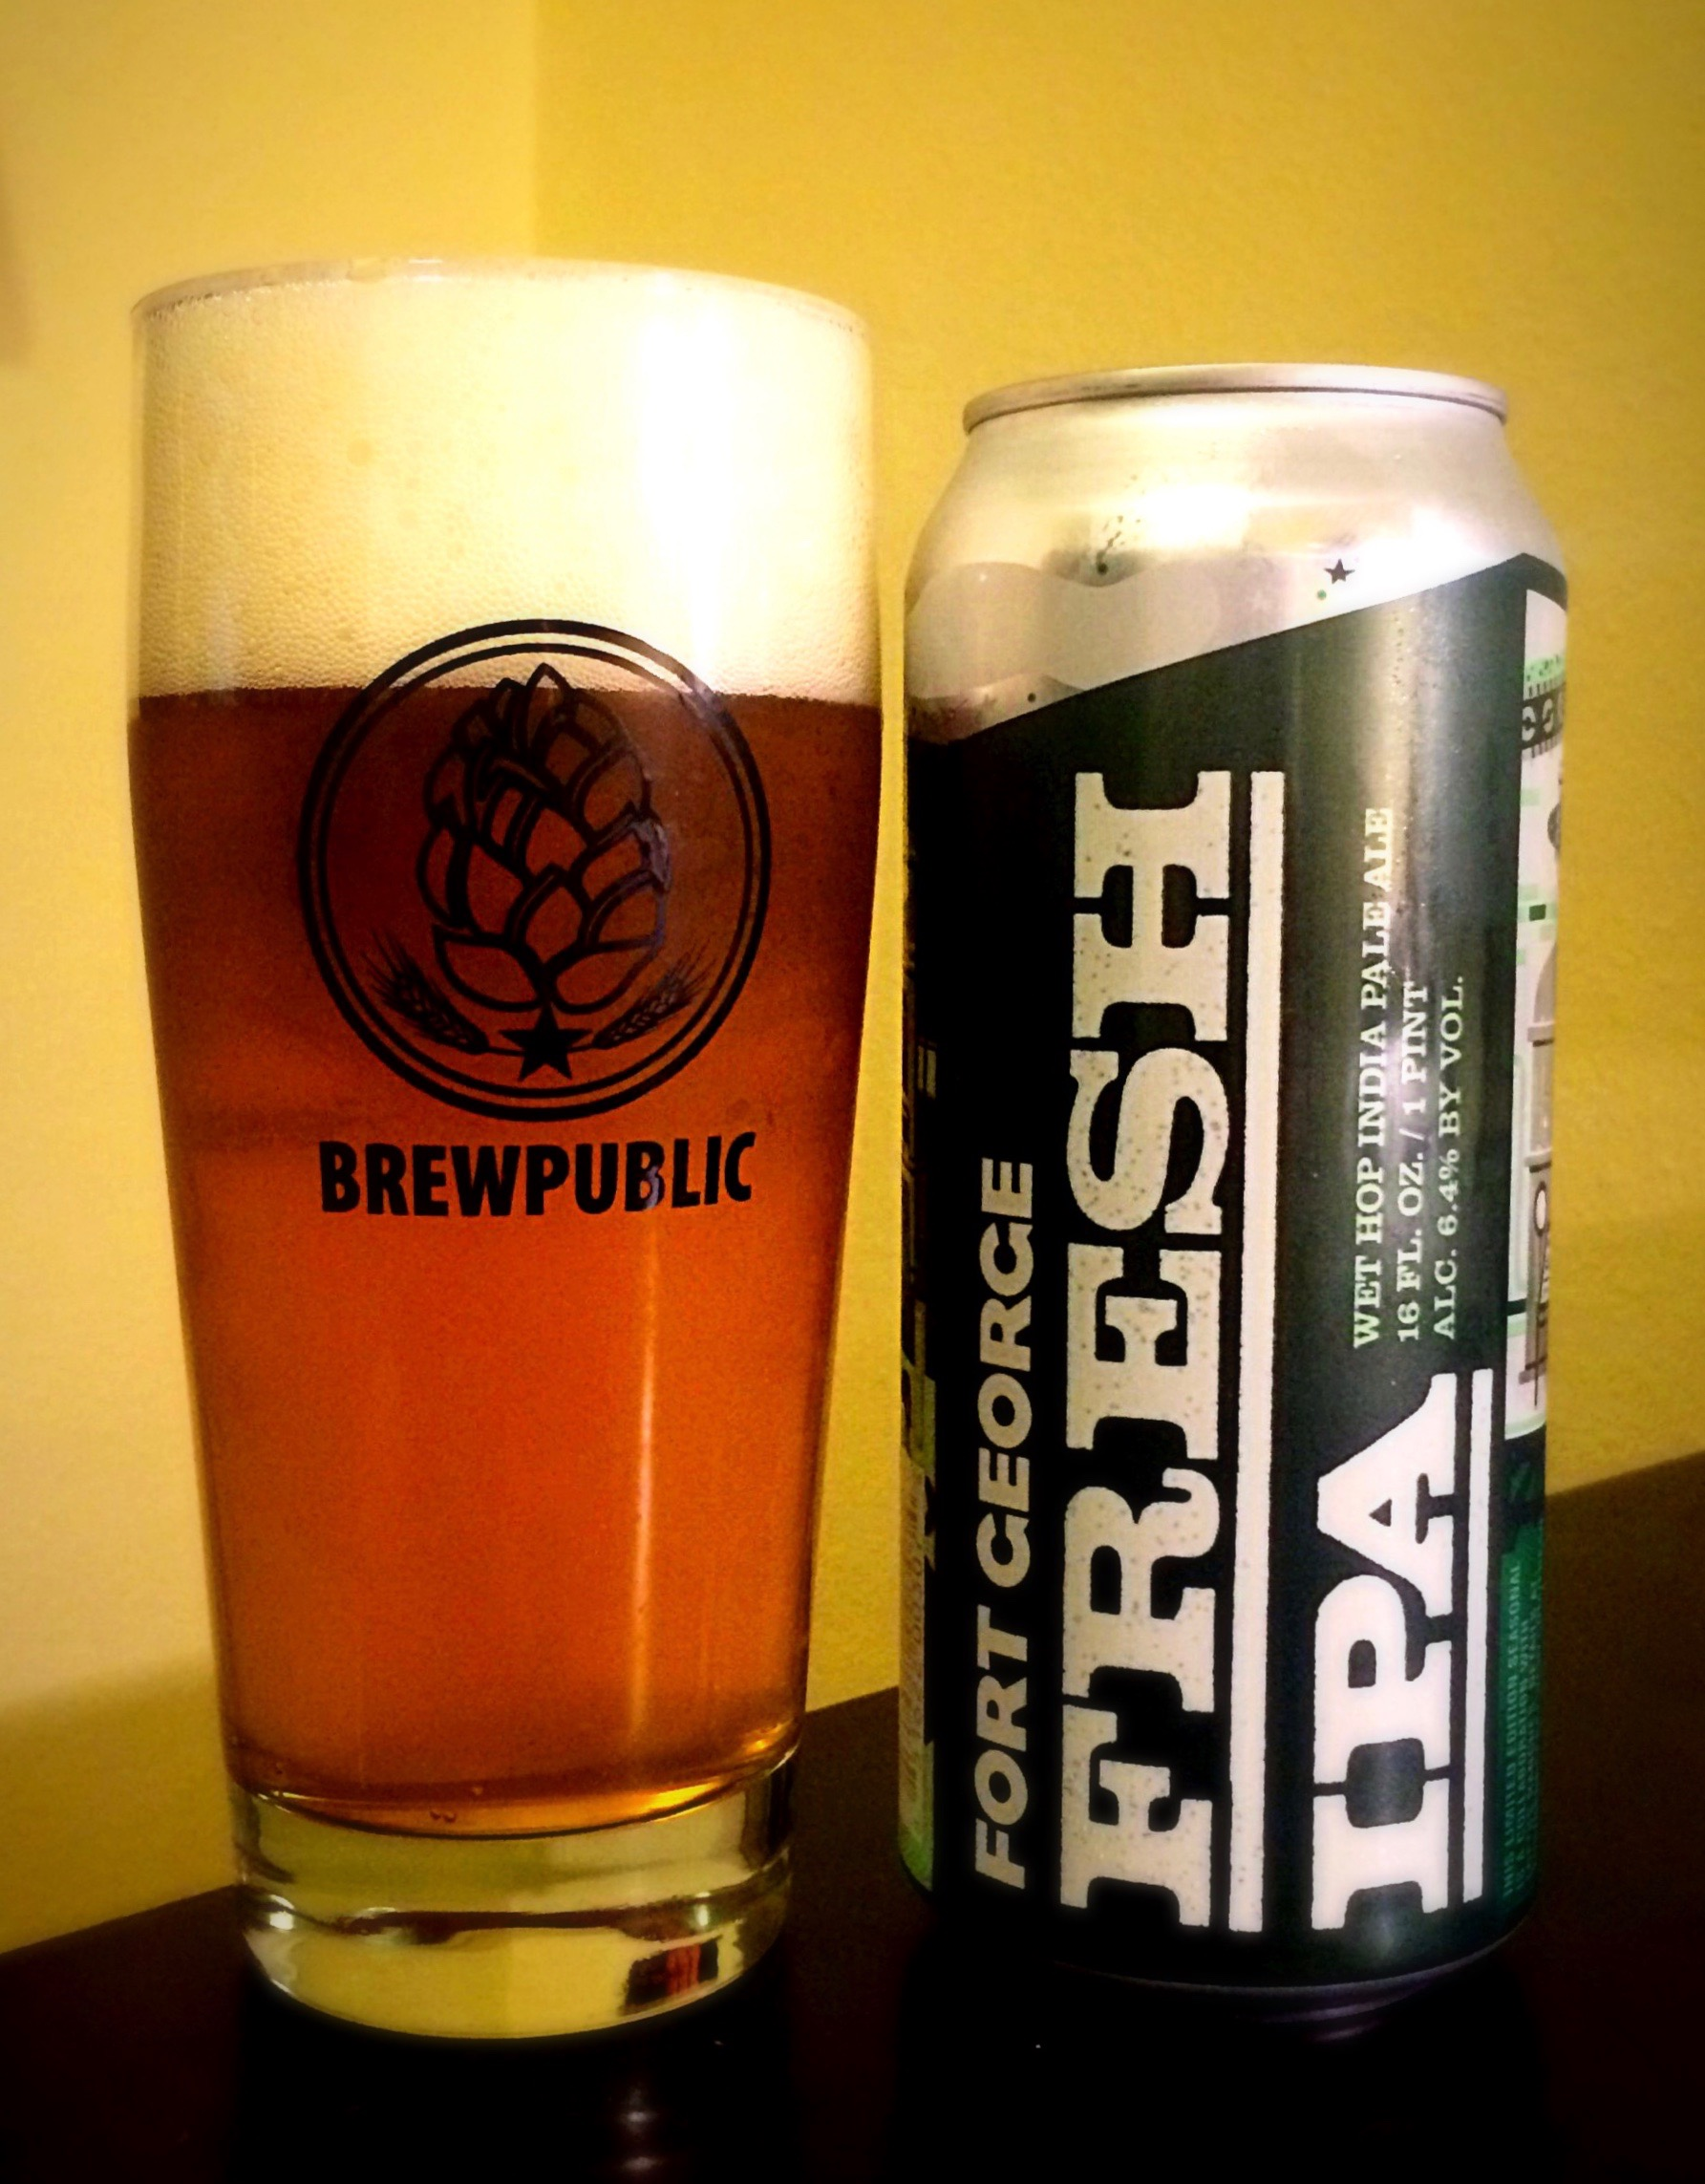 Fort George Fresh IPA pour in a Brewpublic glass (photo by D.J. Paul)